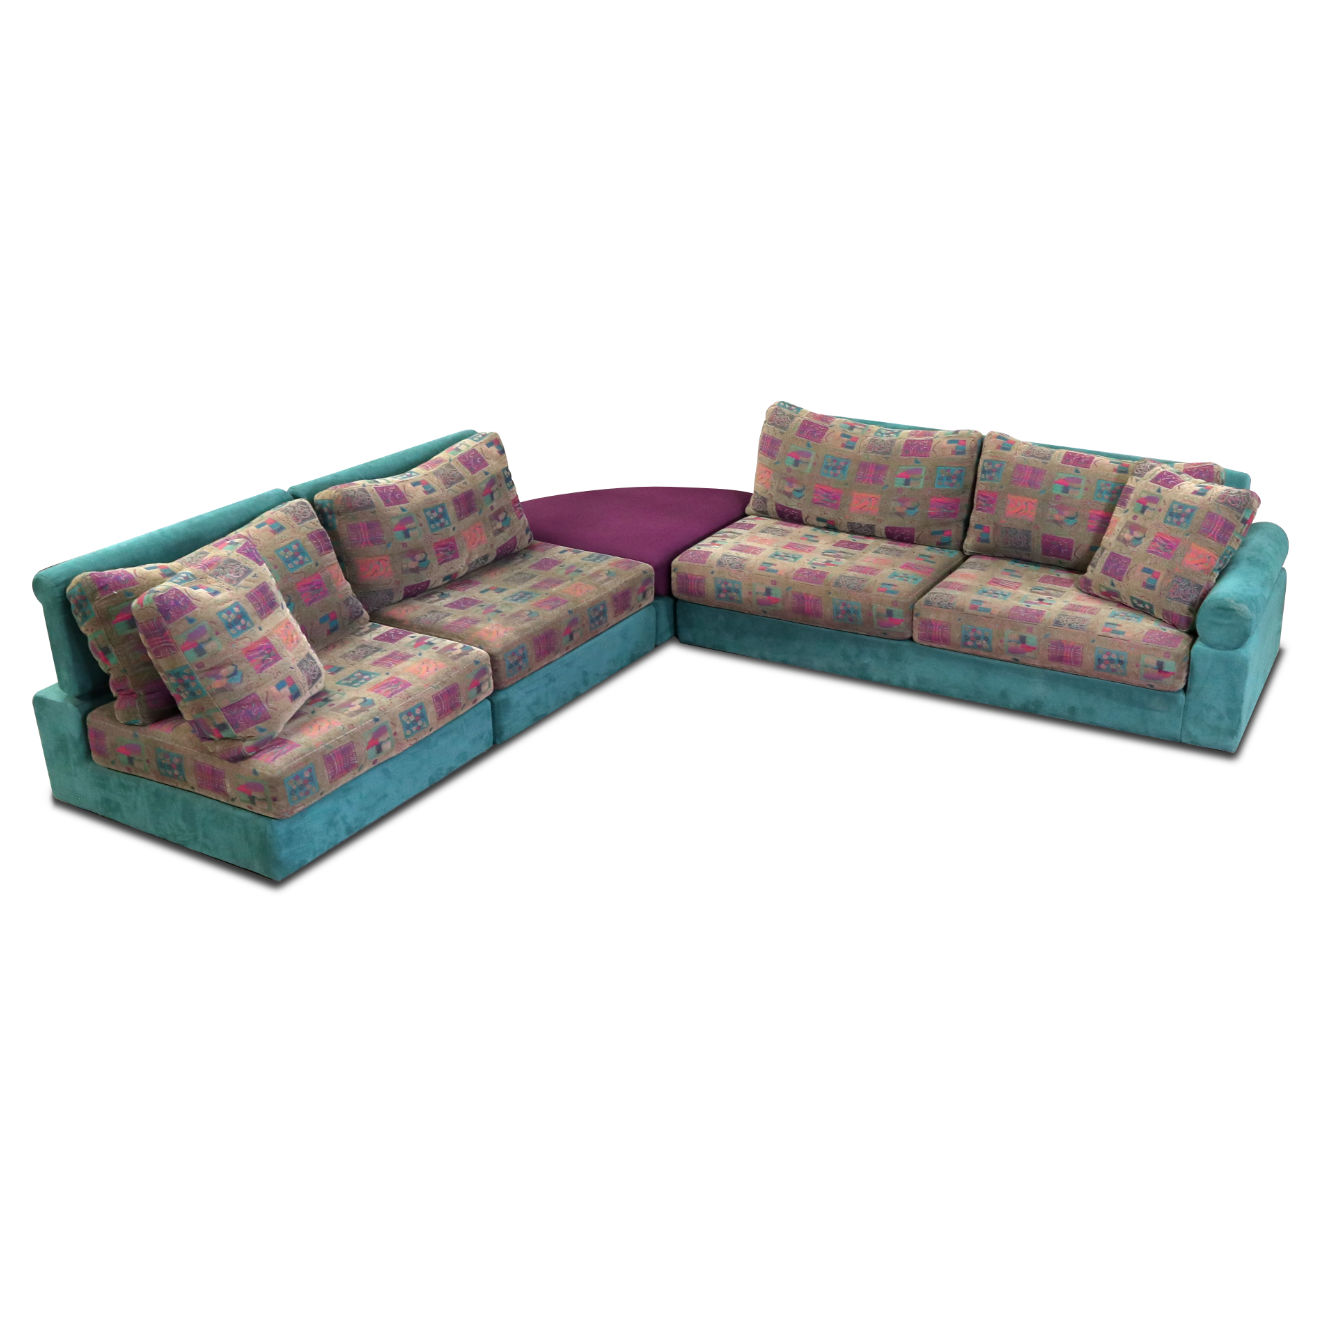 Adjustable Modern Dellarobbia Sectional Sofa In Teal And Purple Fabric